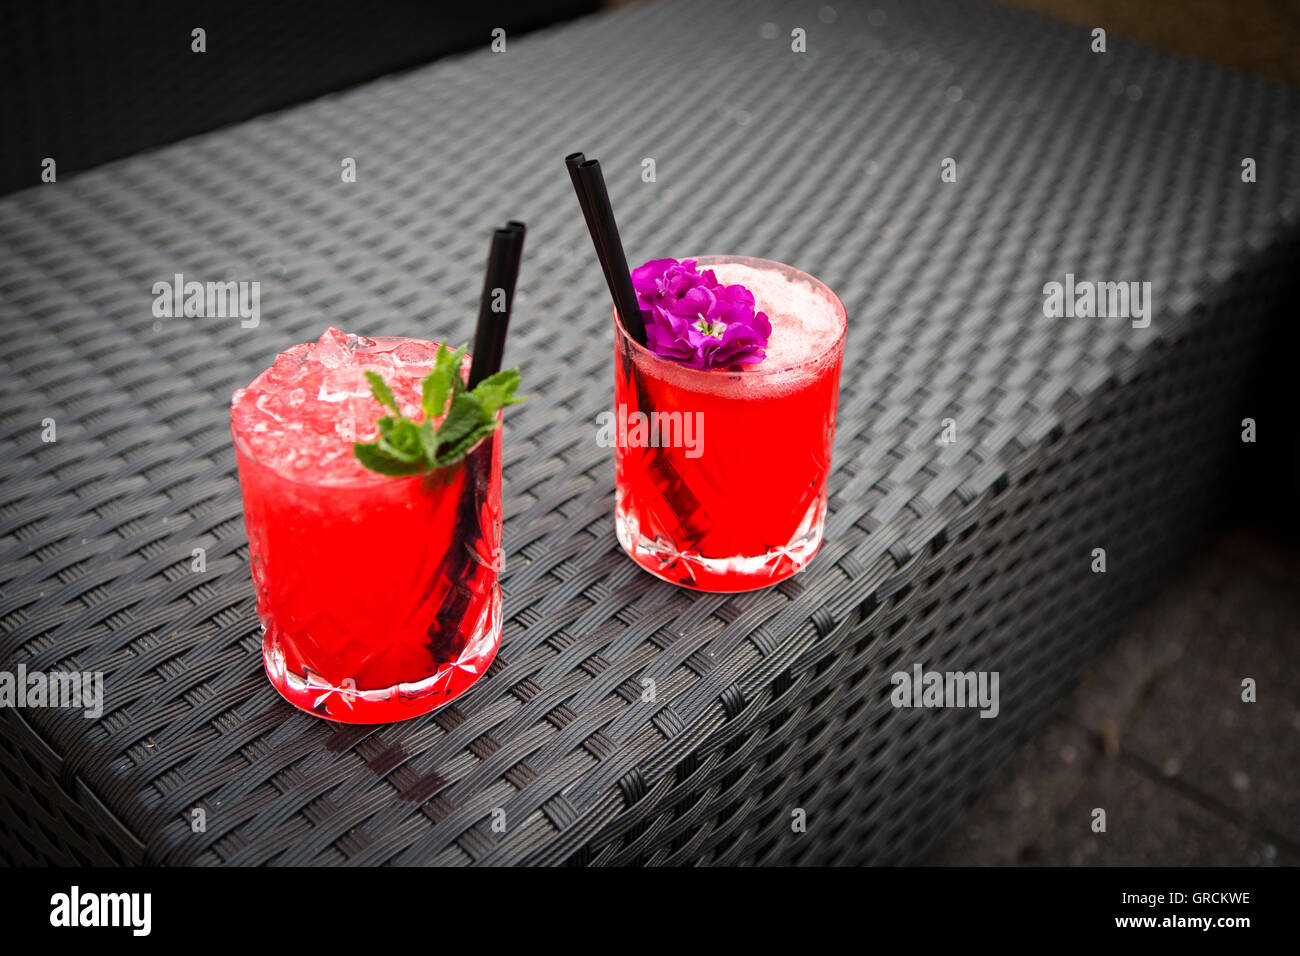 Two Cocktails In The Lounge - Stock Image